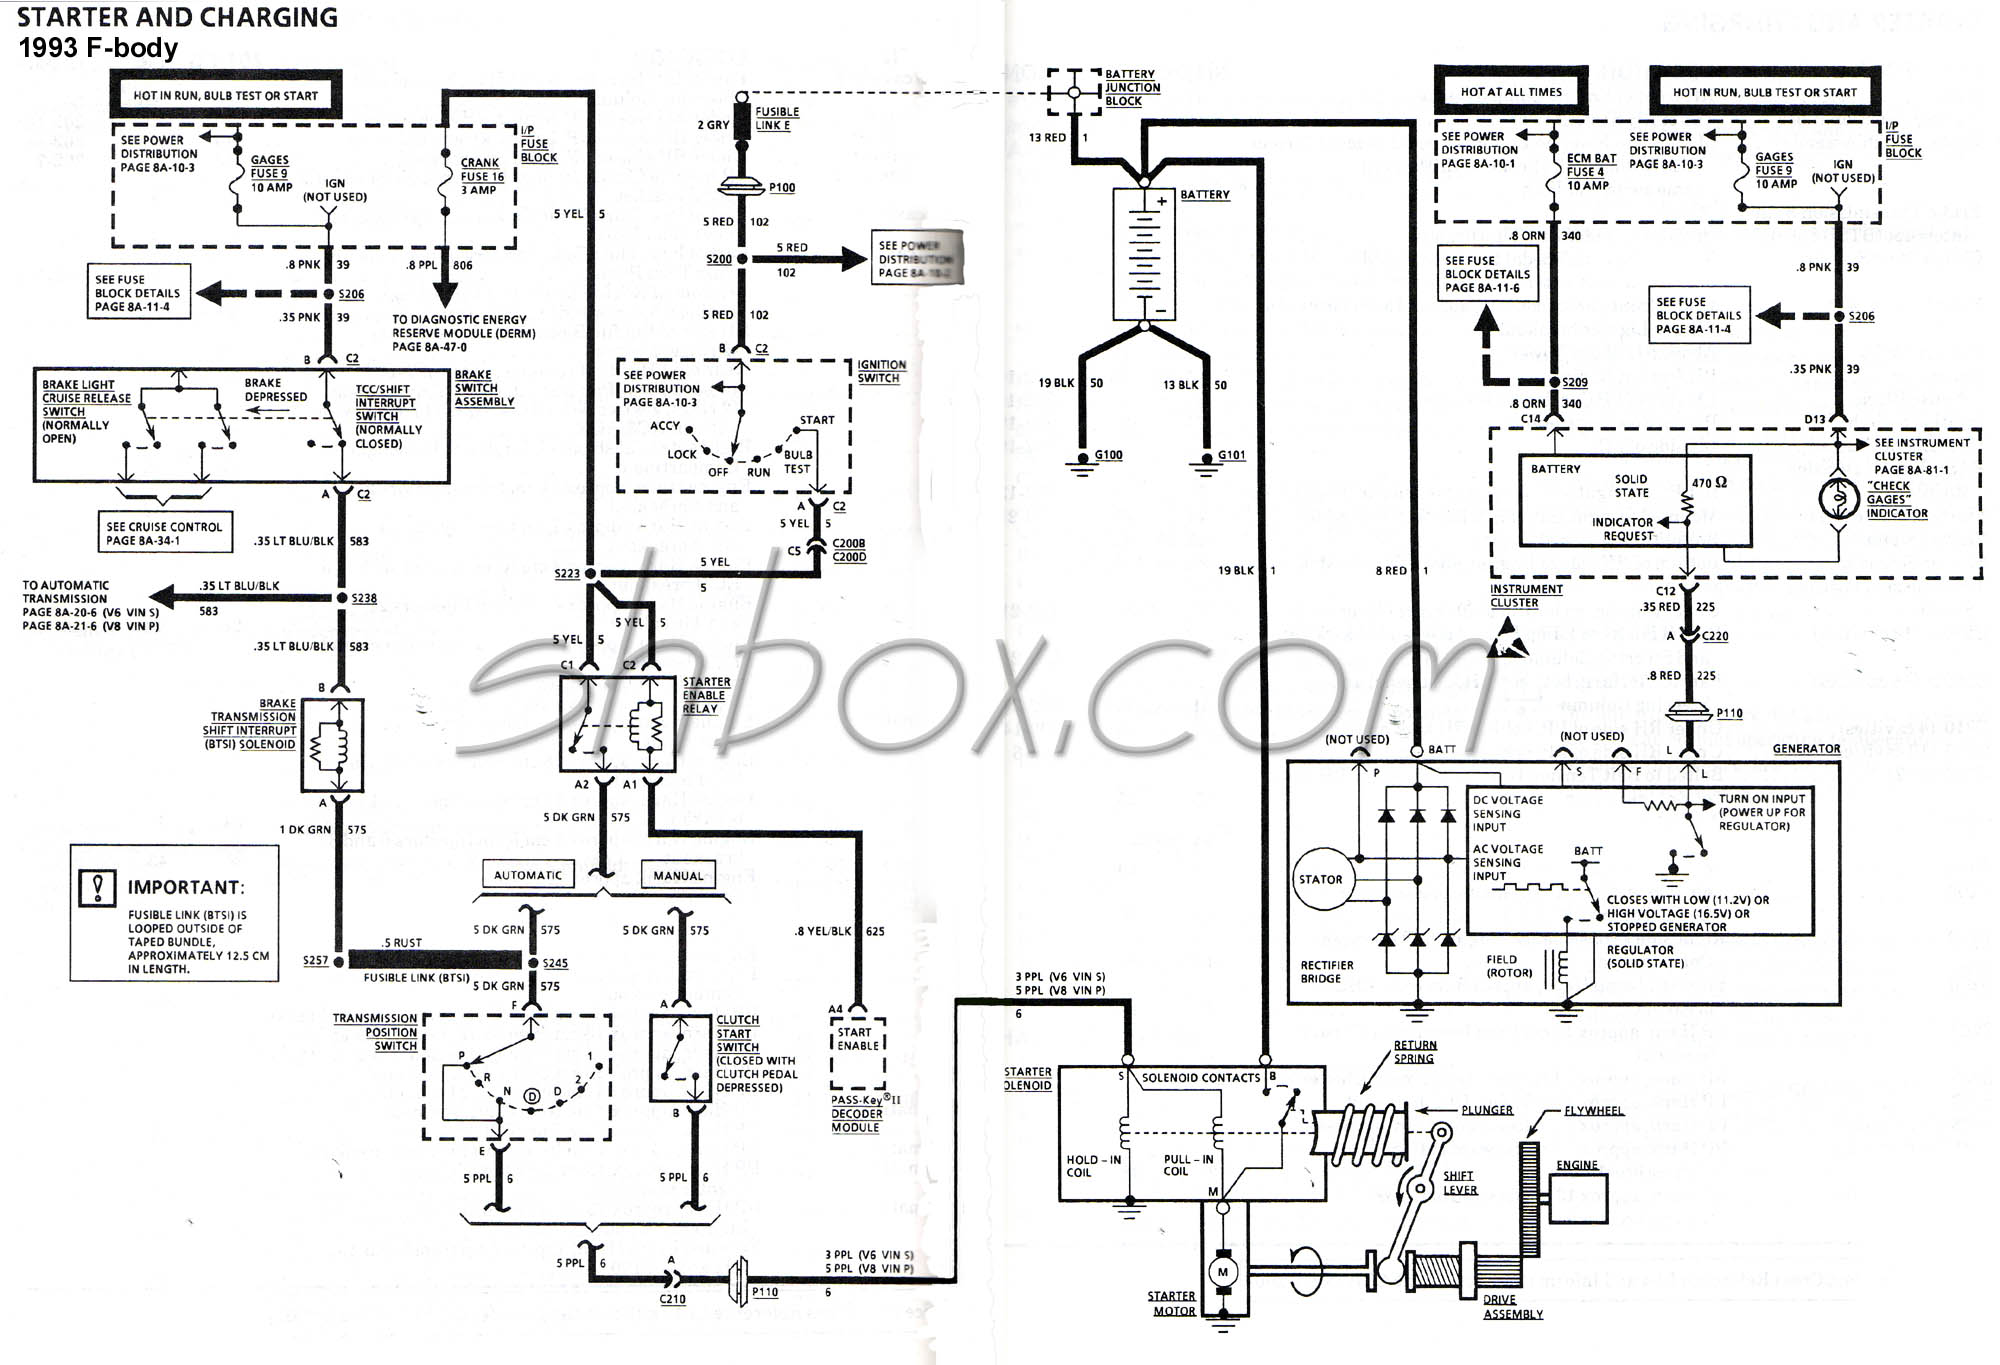 hight resolution of starter and charging schematic 1993